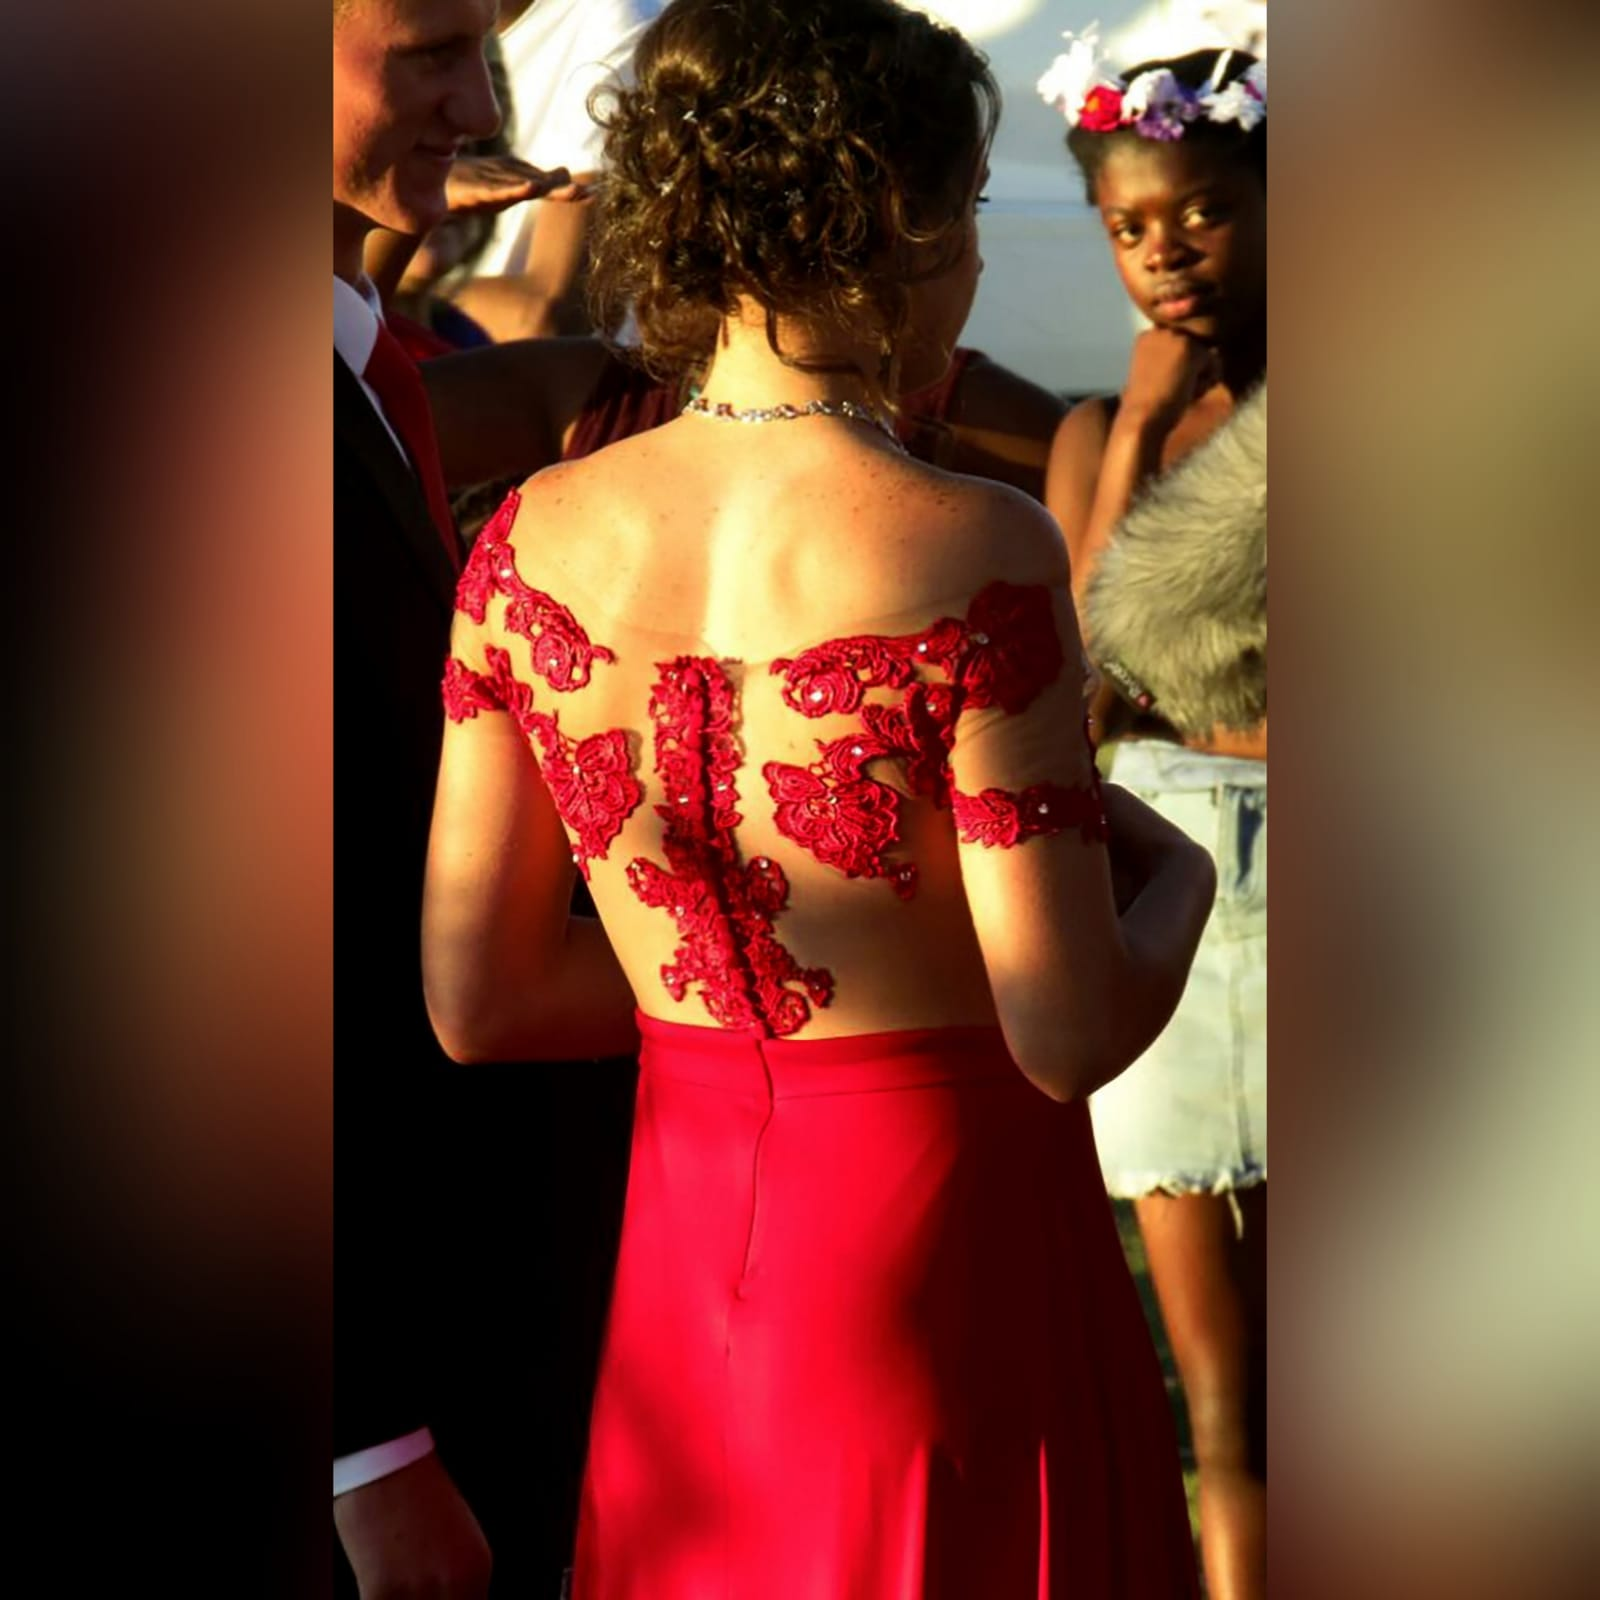 Red flowy lace bodice prom dress 6 red flowy lace bodice prom dress. With an illusion lace bodice detailed with silver beads and buttons. Evening dress with a slit and a train.